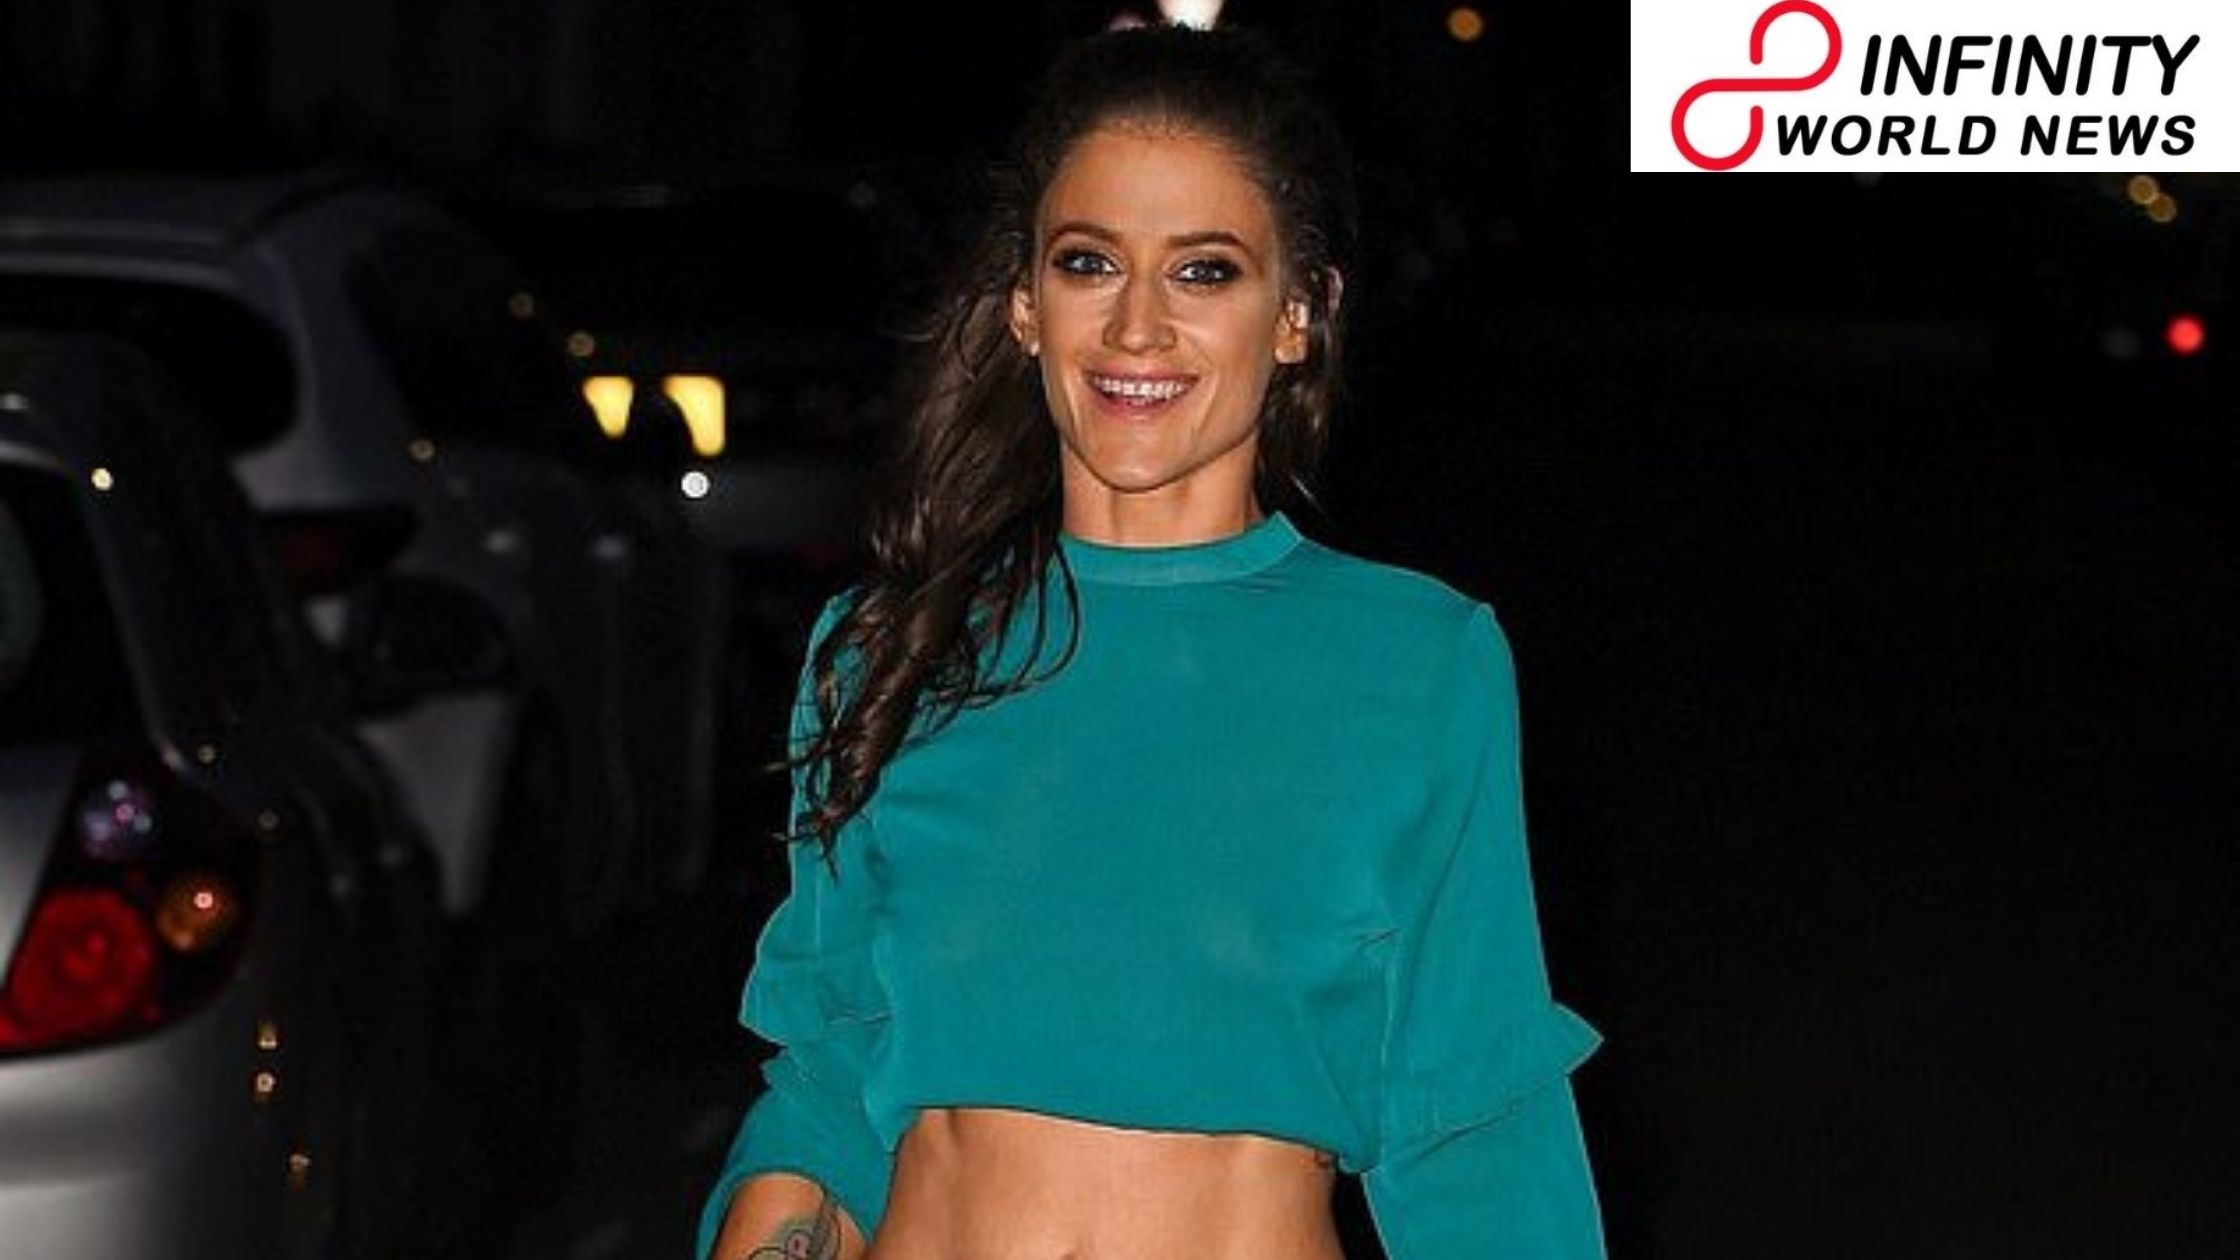 Katie Waissel claims she was explicitly attacked by one of the X Factor group